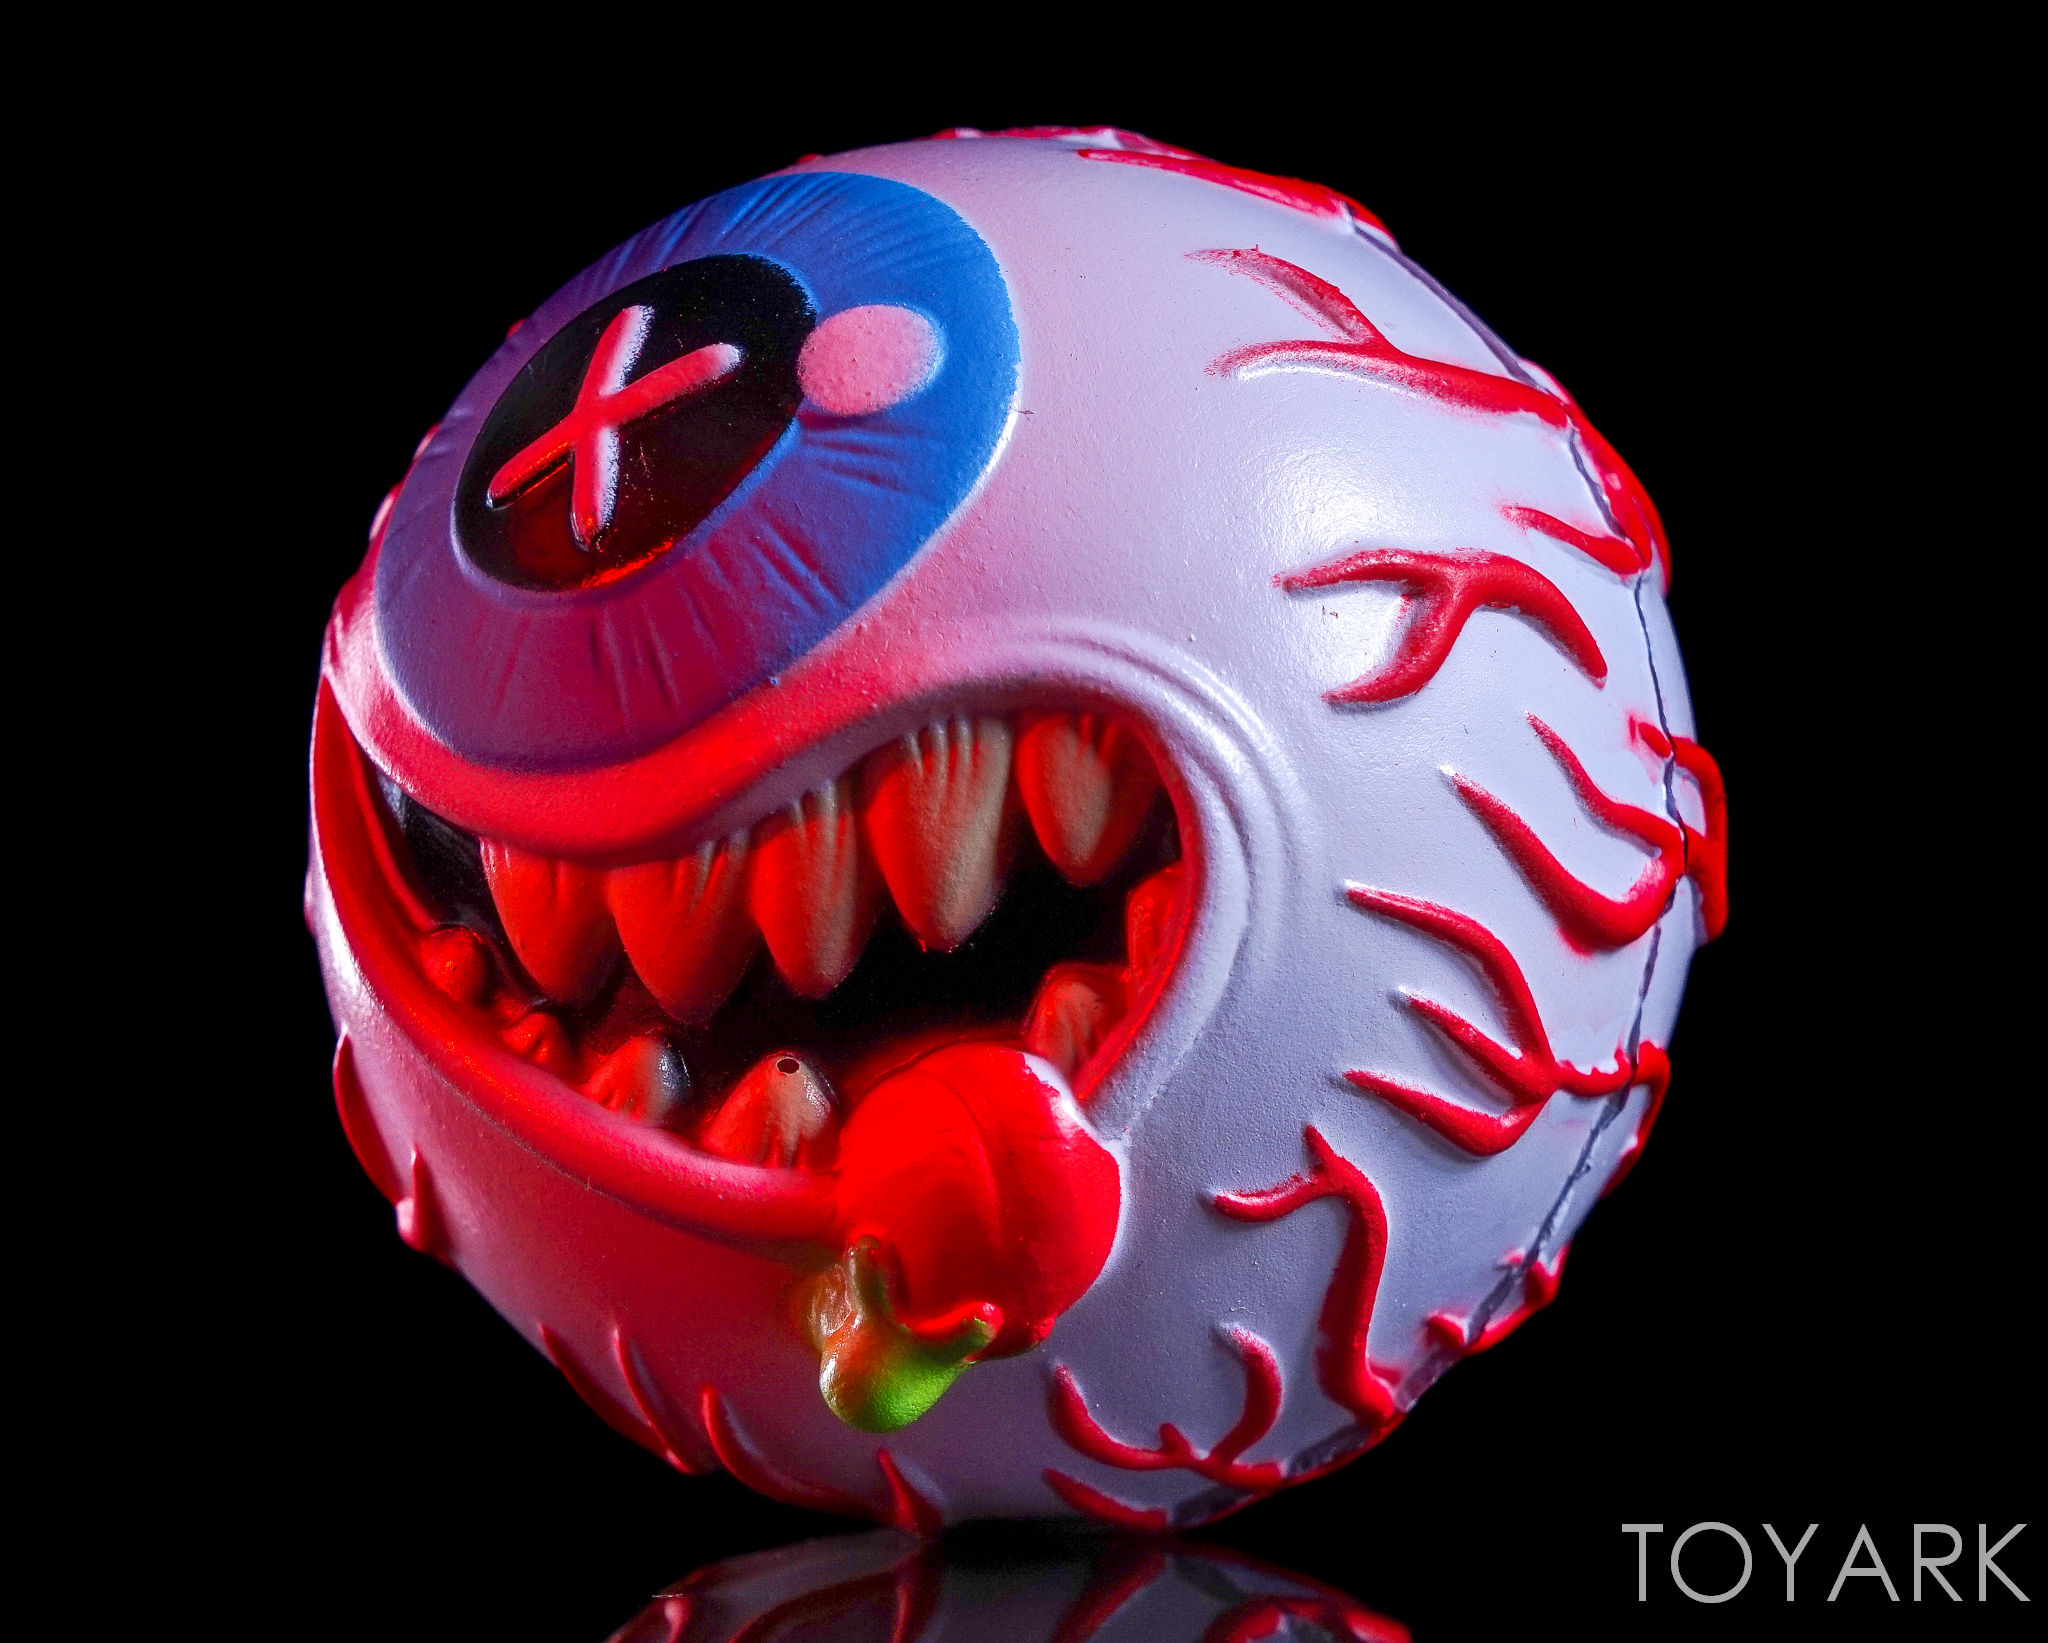 http://news.toyark.com/wp-content/uploads/sites/4/2017/01/Just-Play-Series-1-Madballs-041.jpg